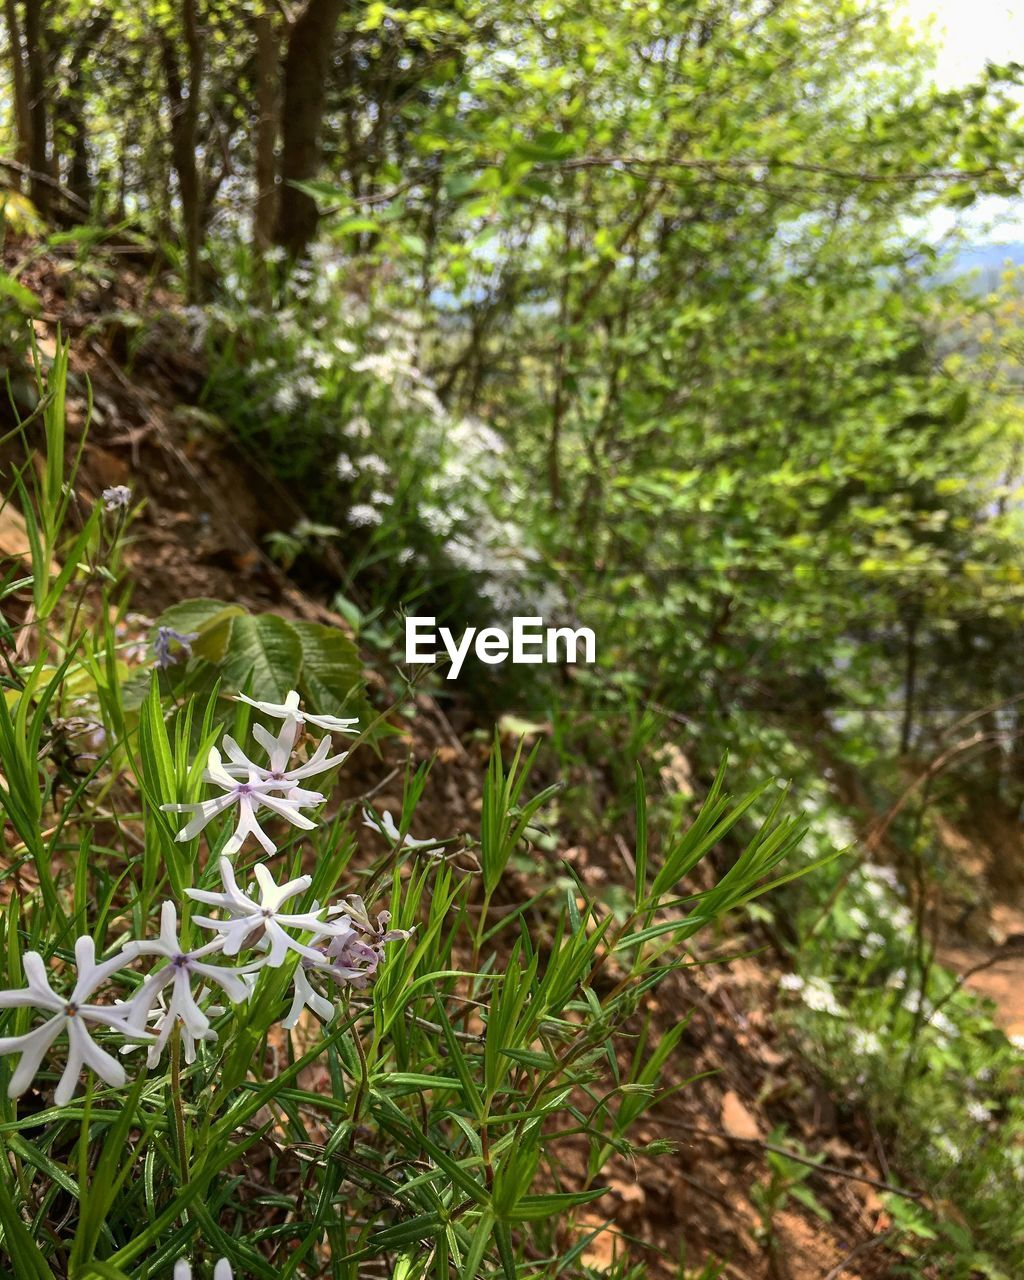 plant, growth, beauty in nature, green color, nature, land, tree, day, tranquility, no people, selective focus, forest, close-up, focus on foreground, freshness, outdoors, field, tree trunk, flower, trunk